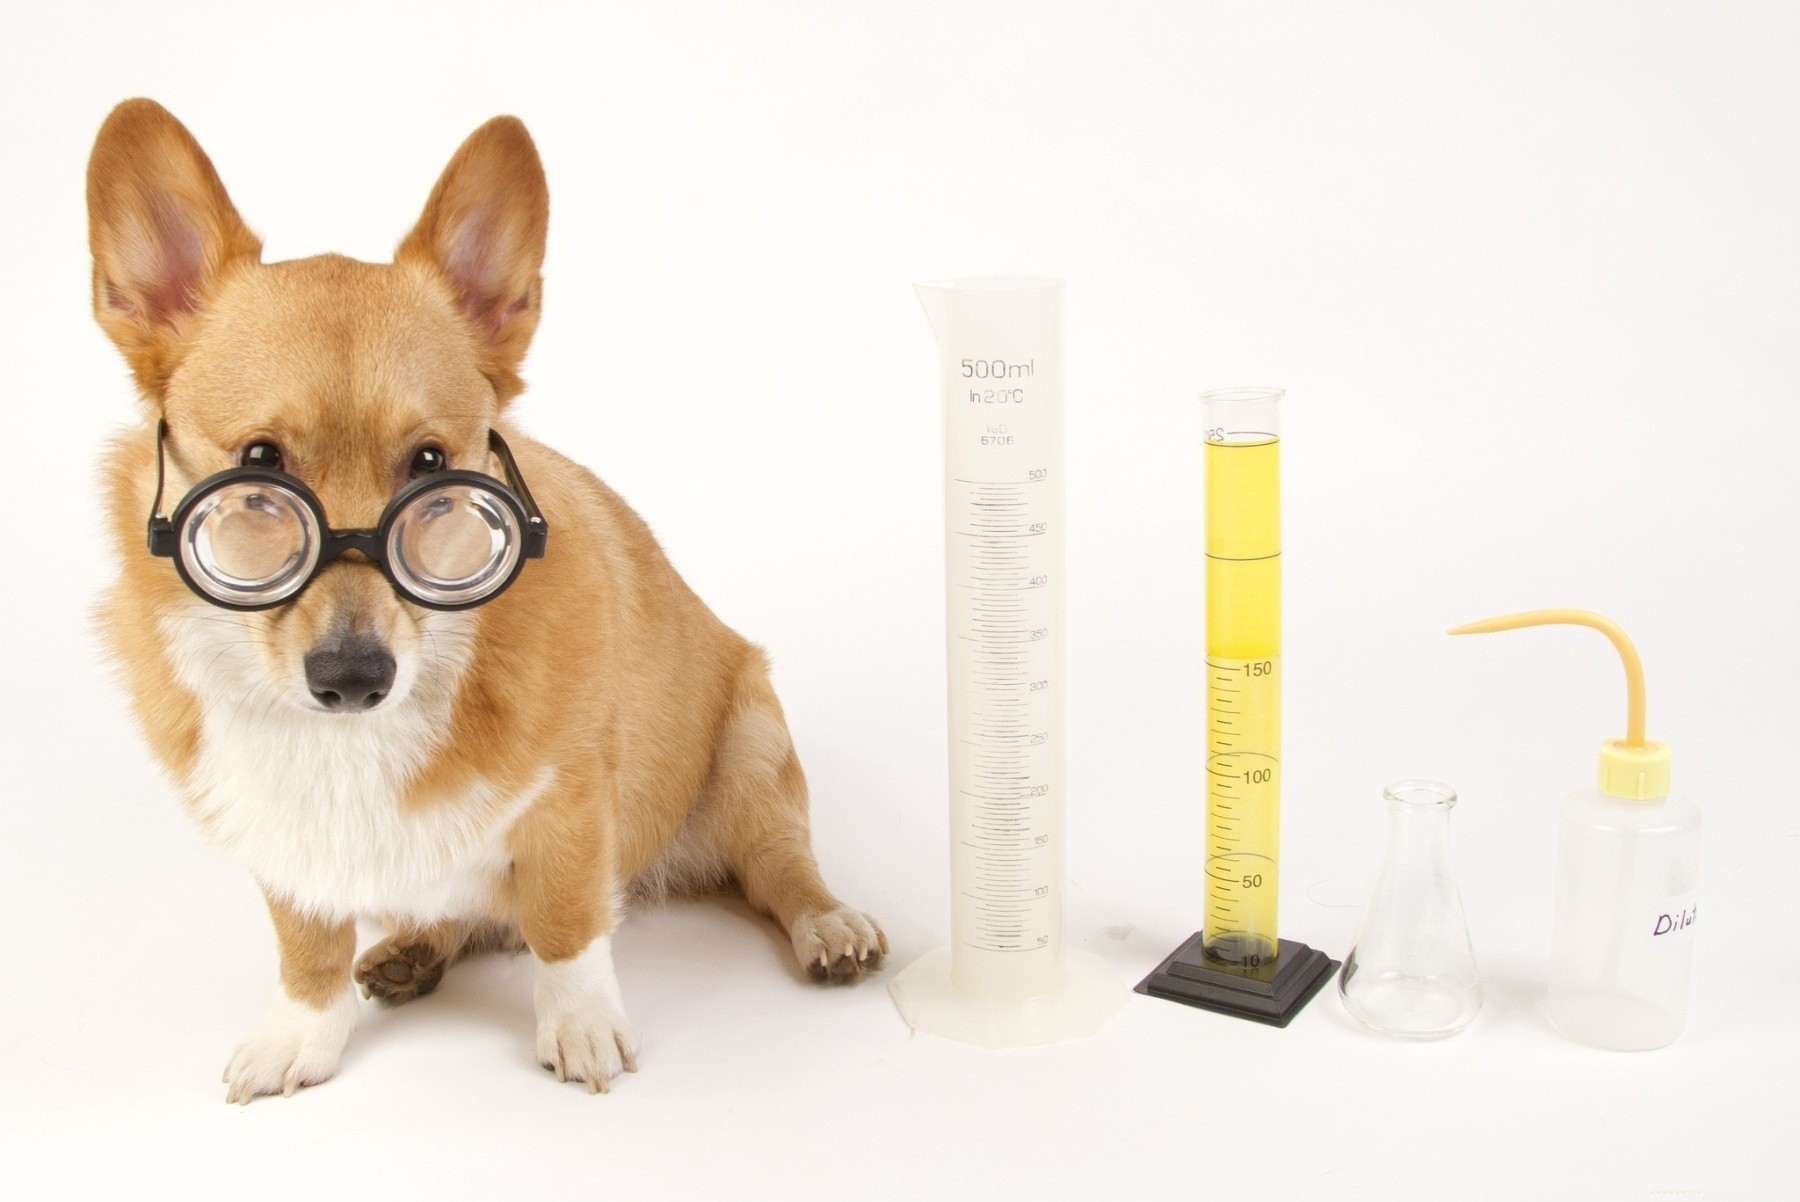 88 888563 glases glass dogs glasses dog animals 3d wallpapers